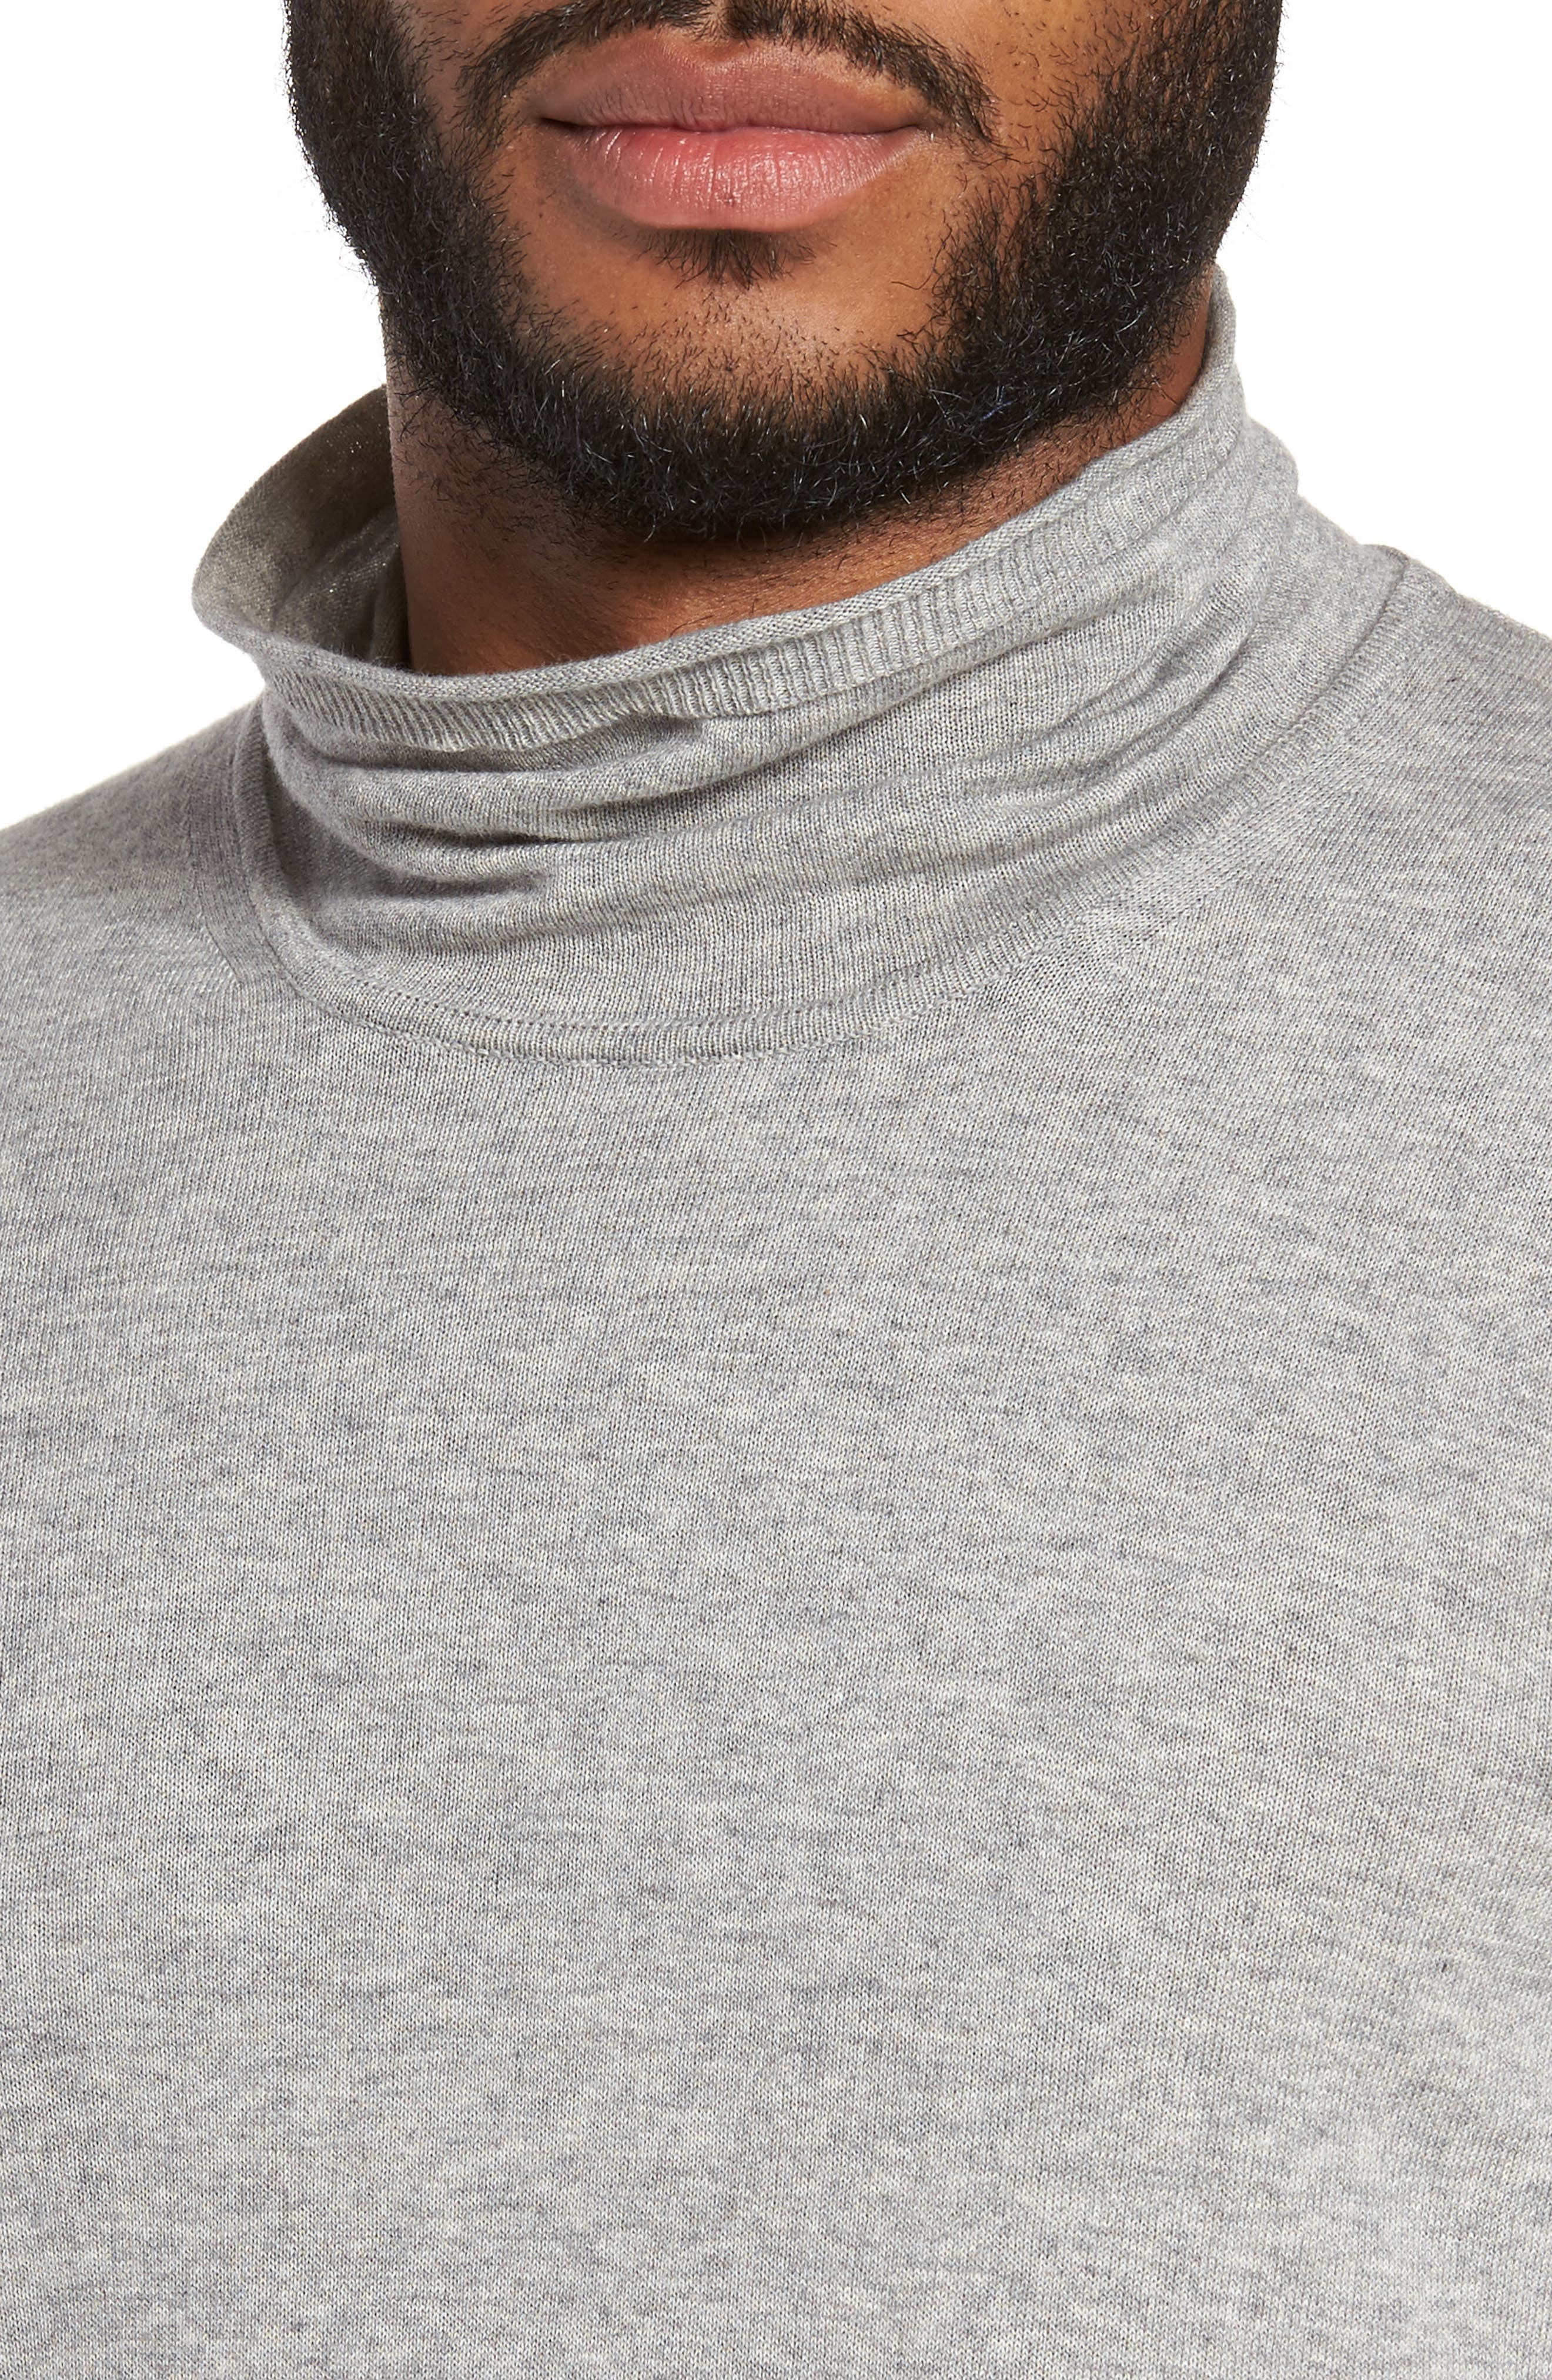 Hess Wool Turtleneck Sweater,                             Alternate thumbnail 4, color,                             Light Grey